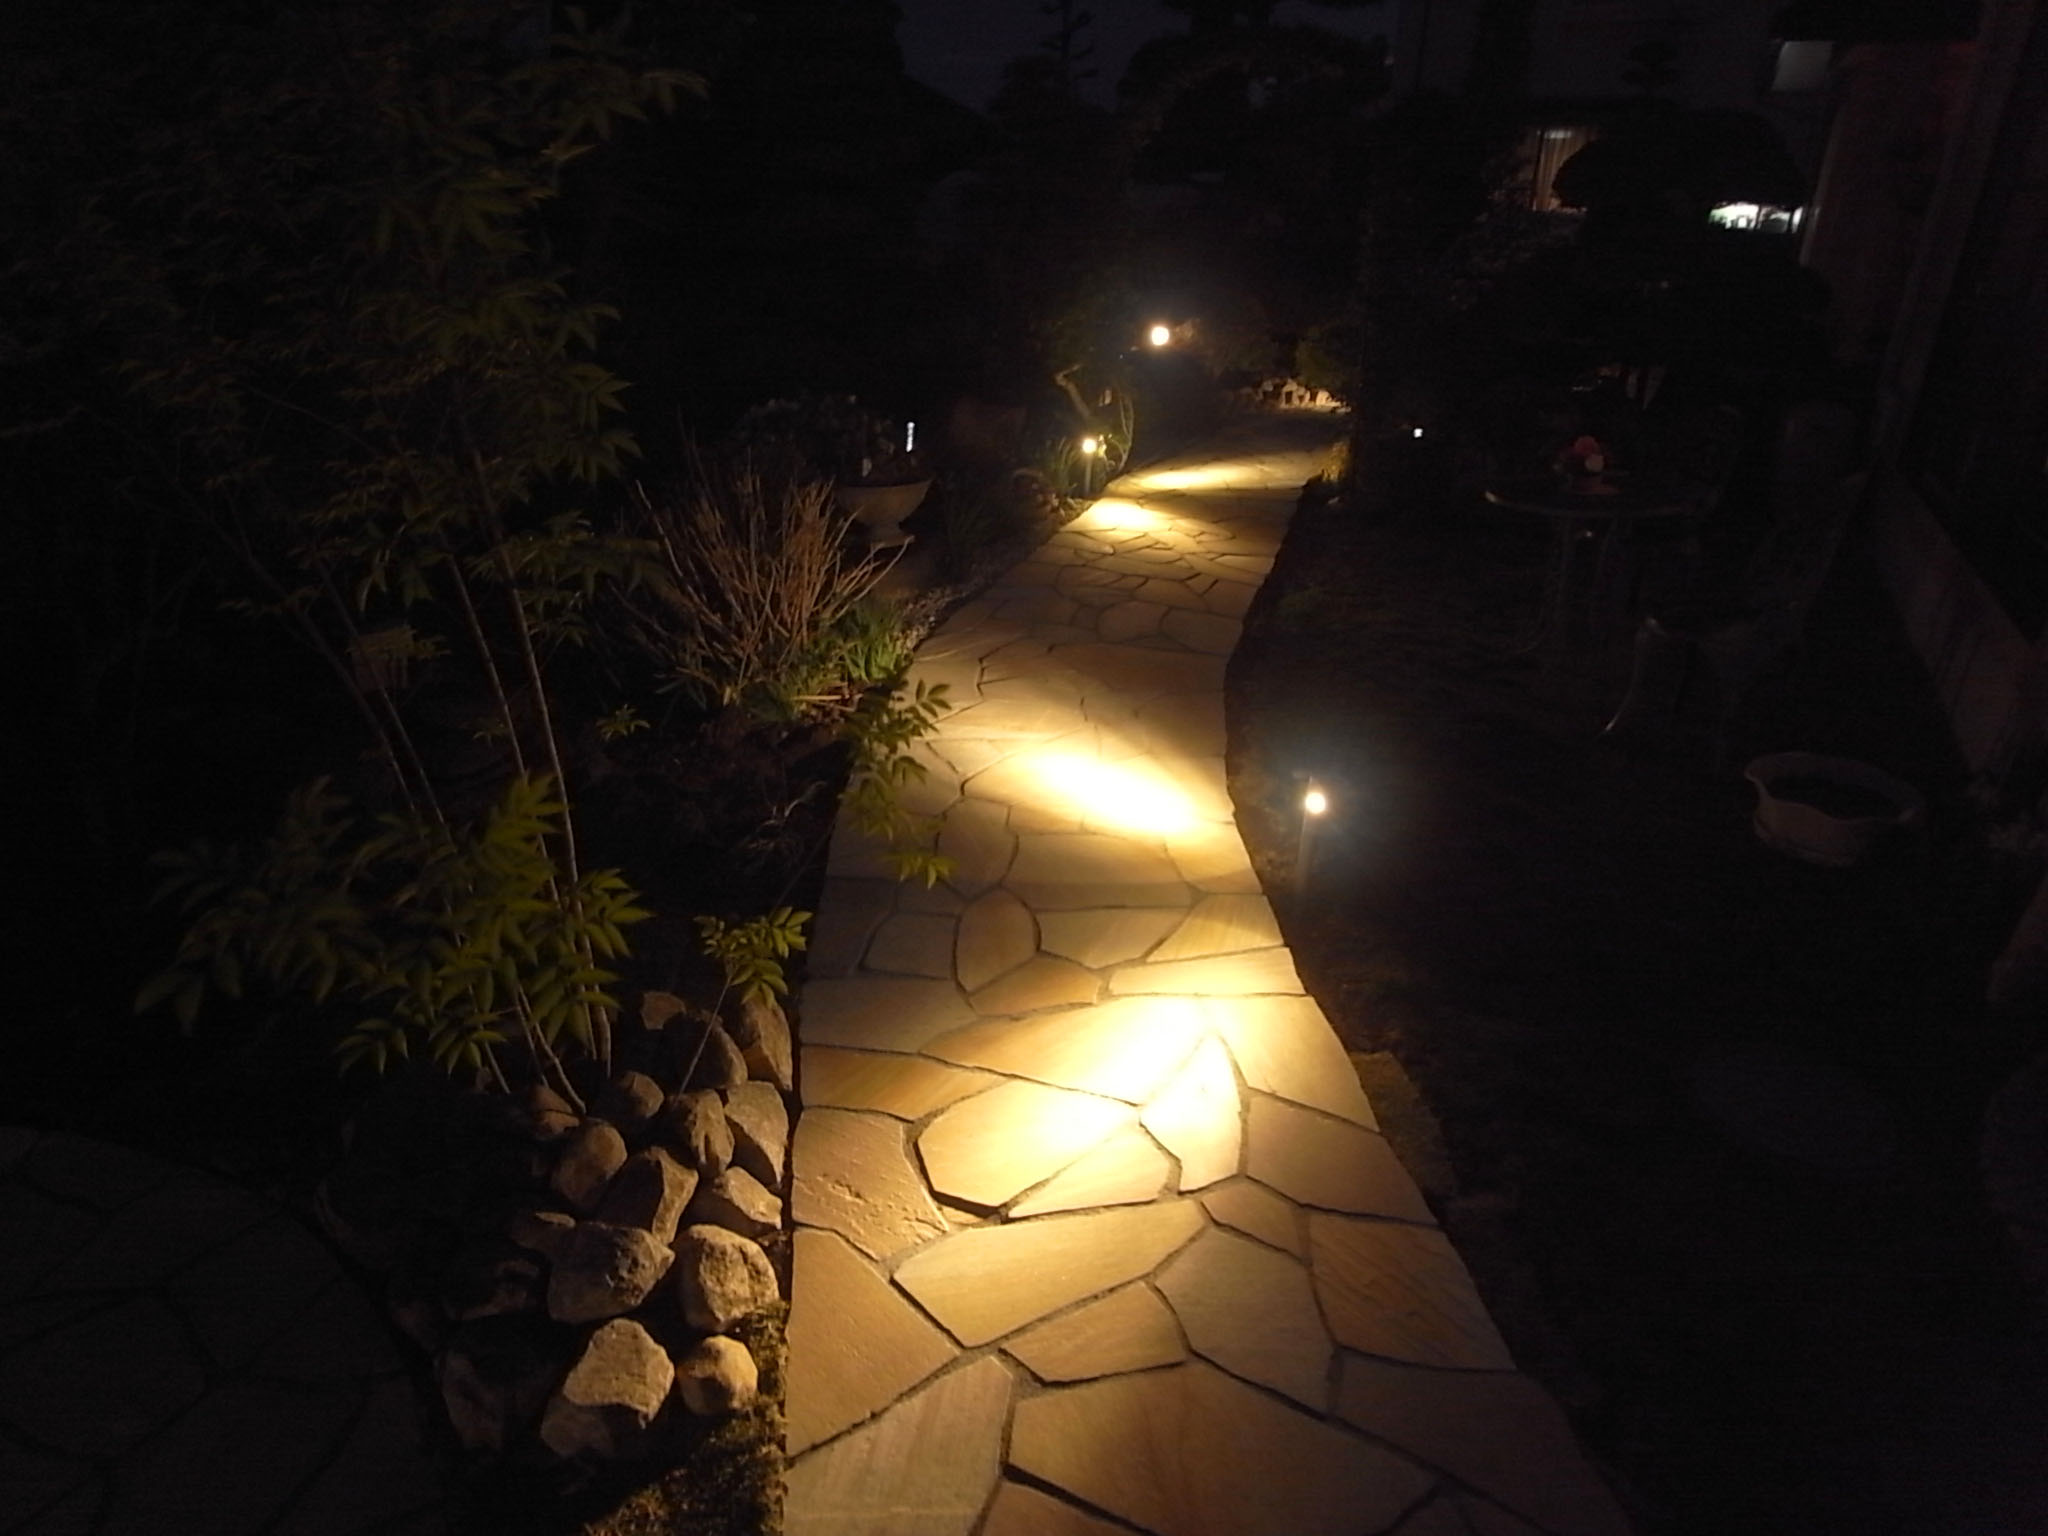 パスライティング 株式会社フリージアデザイン 長野県M様邸 Spectacular garden lighting by lighting professionals. Enjoy a dramatic, romantic, even mysterious scene comparing to a day time.